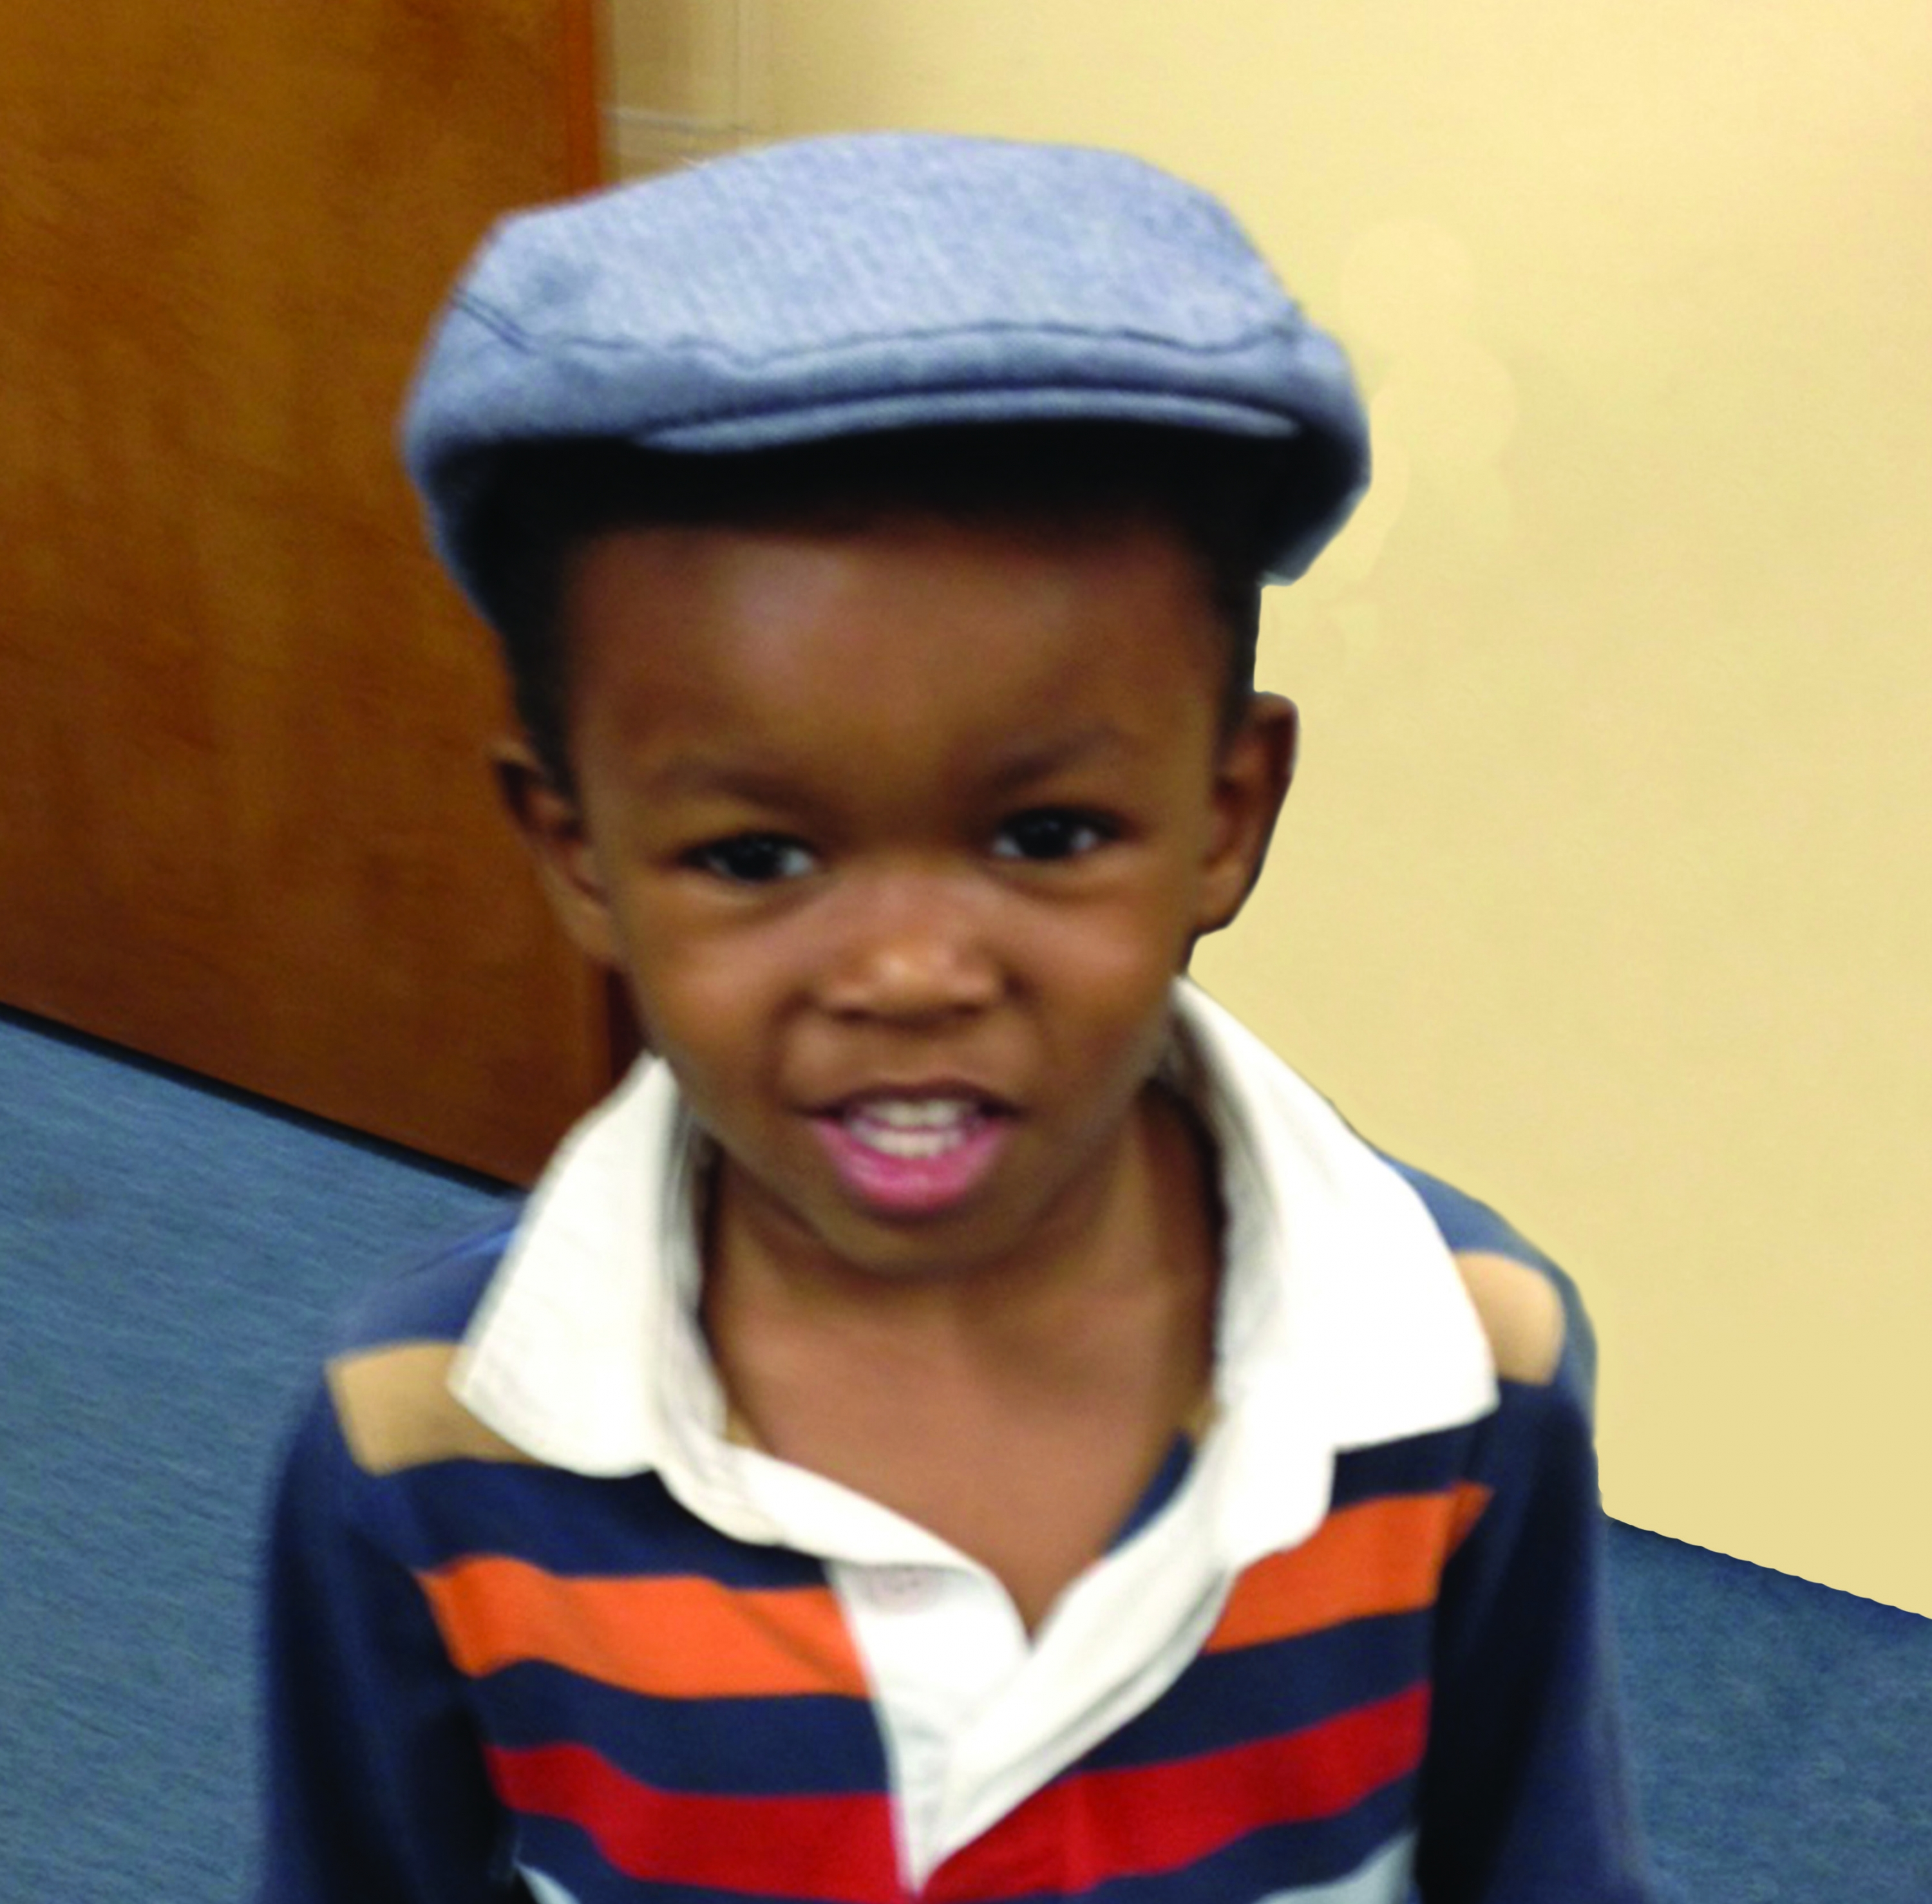 smiling toddler boy (dressed in cap and striped shirt)